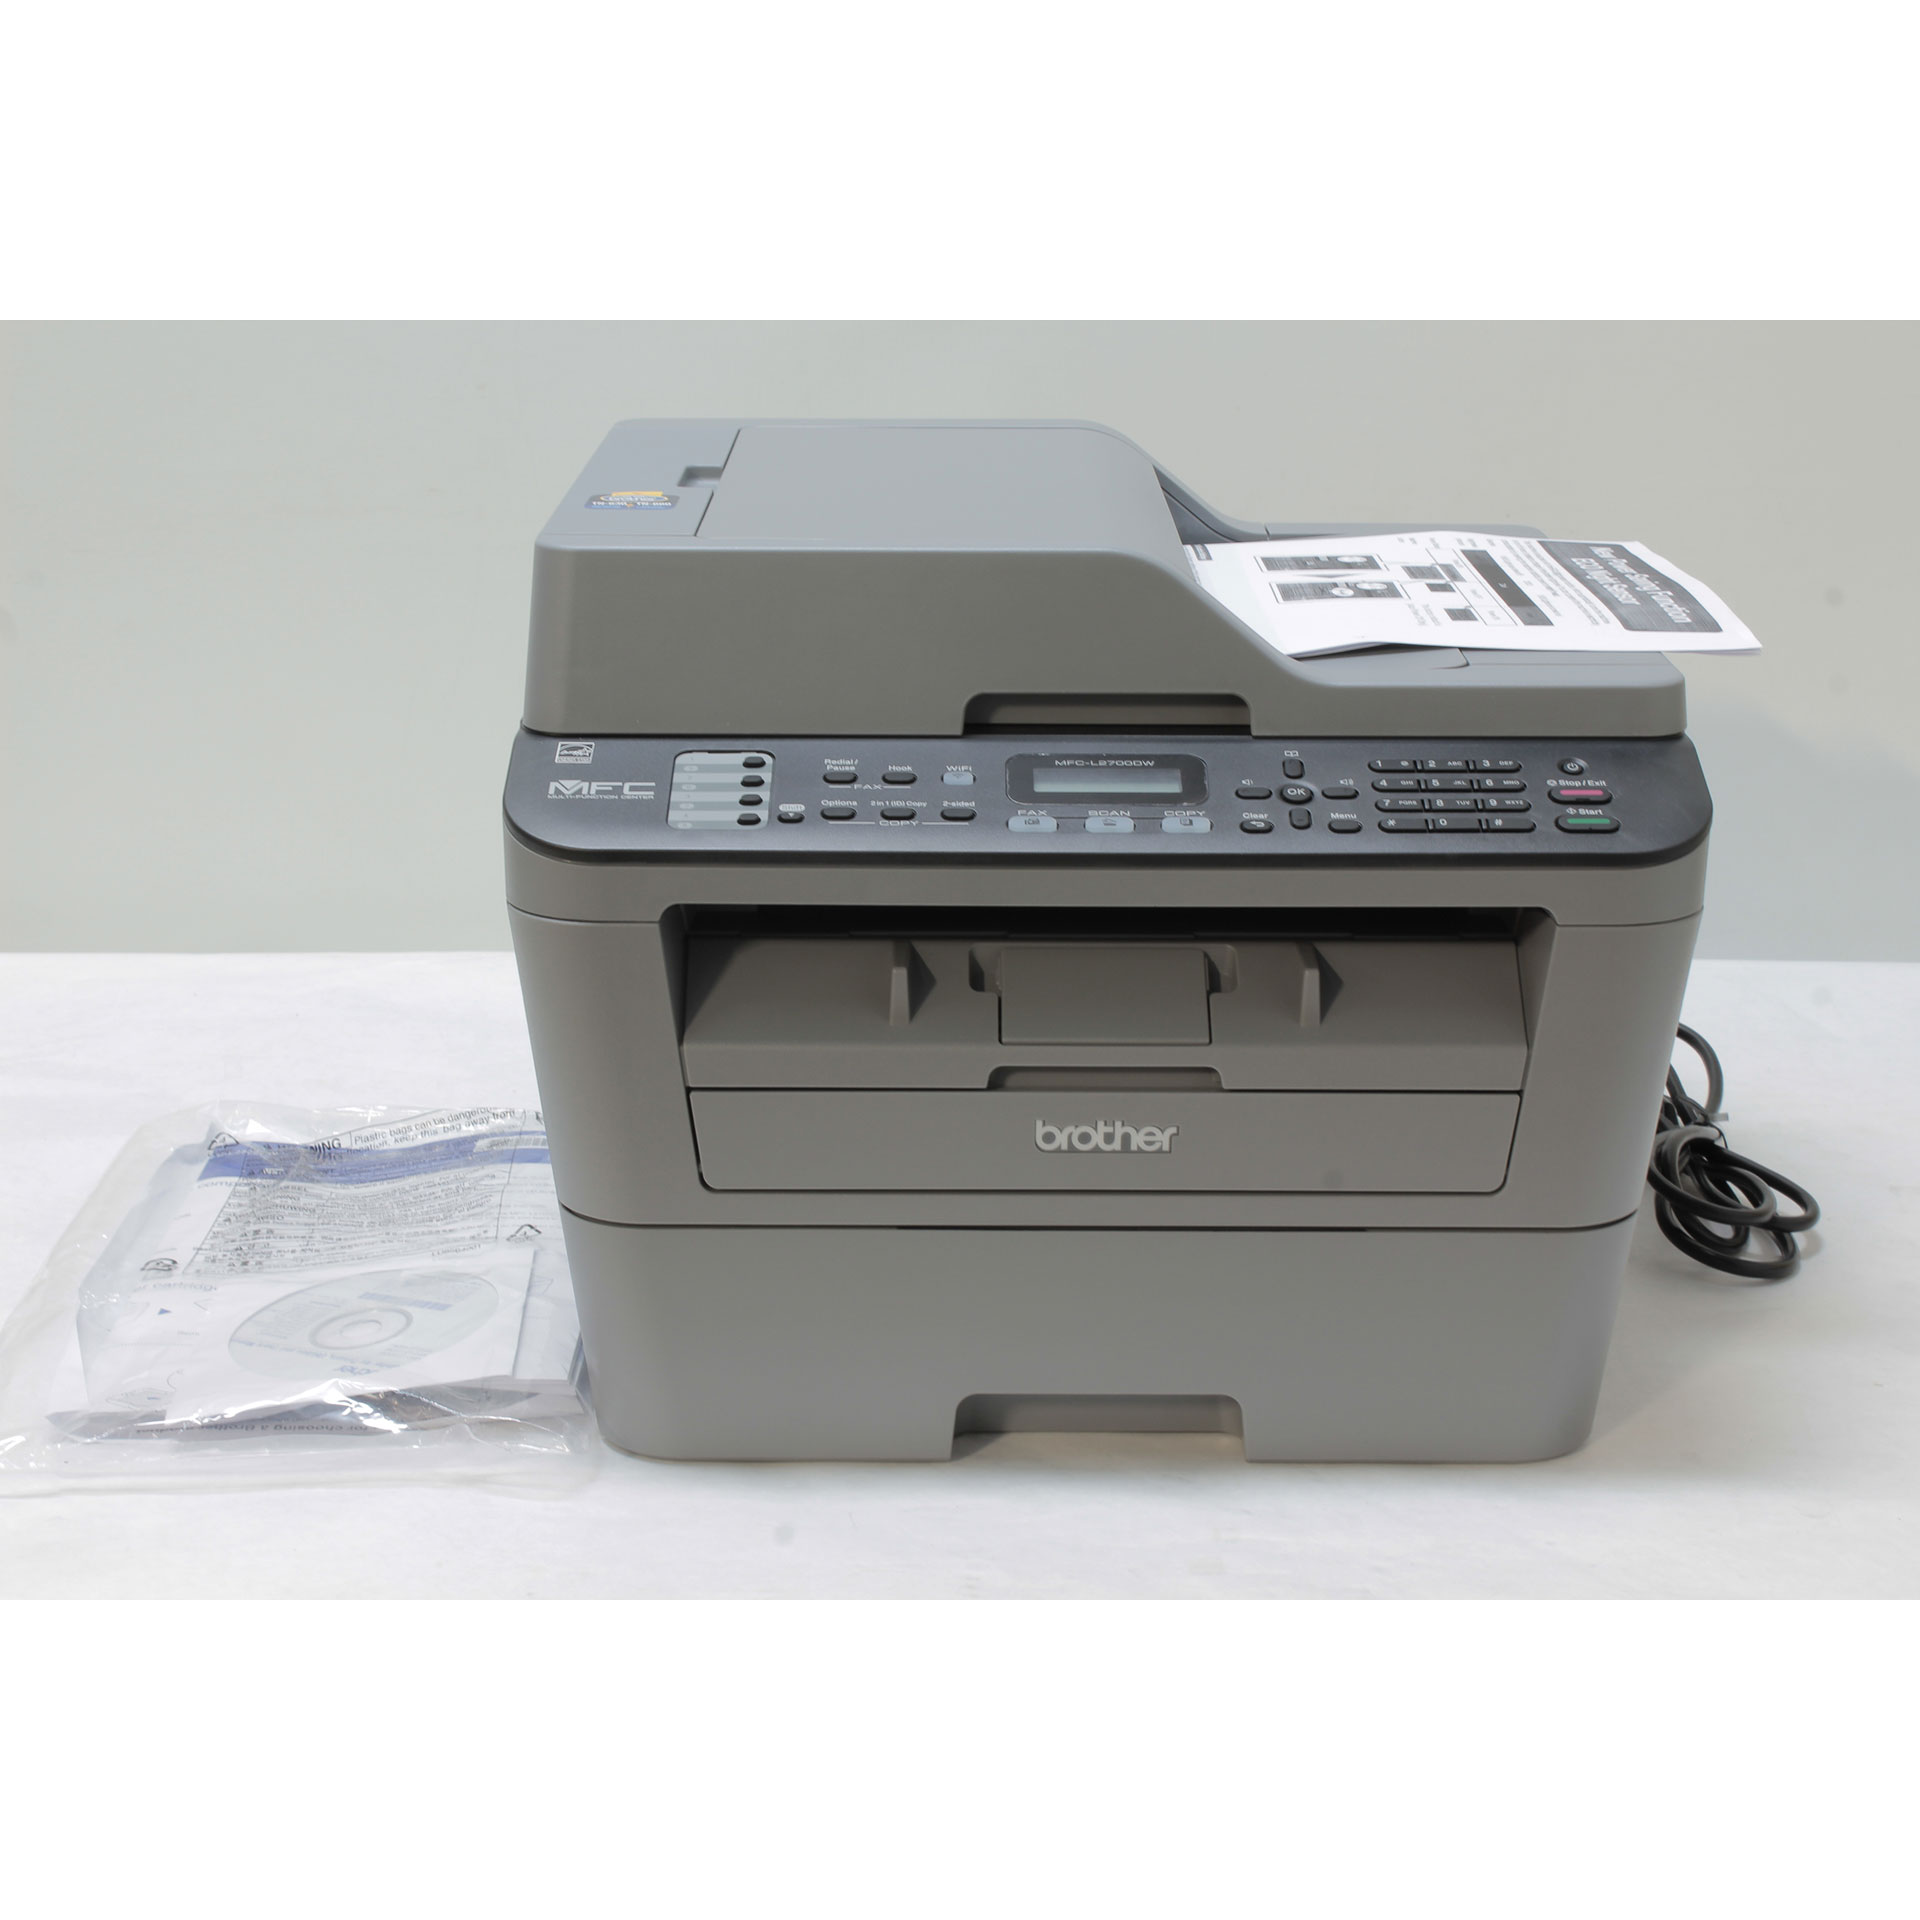 Brother MFC-L2700DW A4 Wireless All-in-One Laser Printer